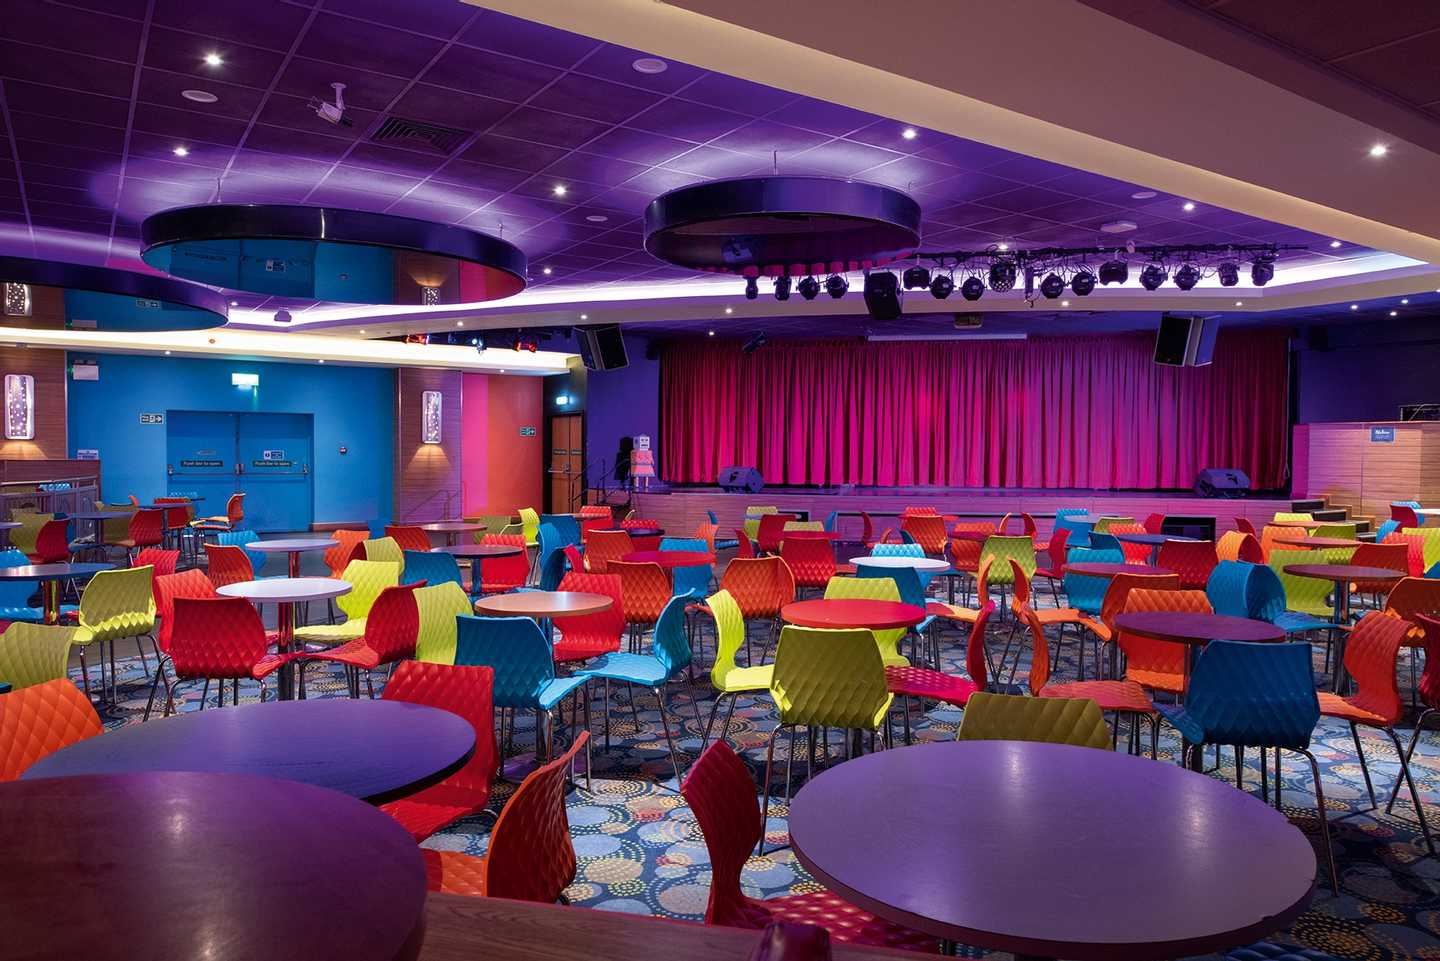 The Live Lounge entertainment venue